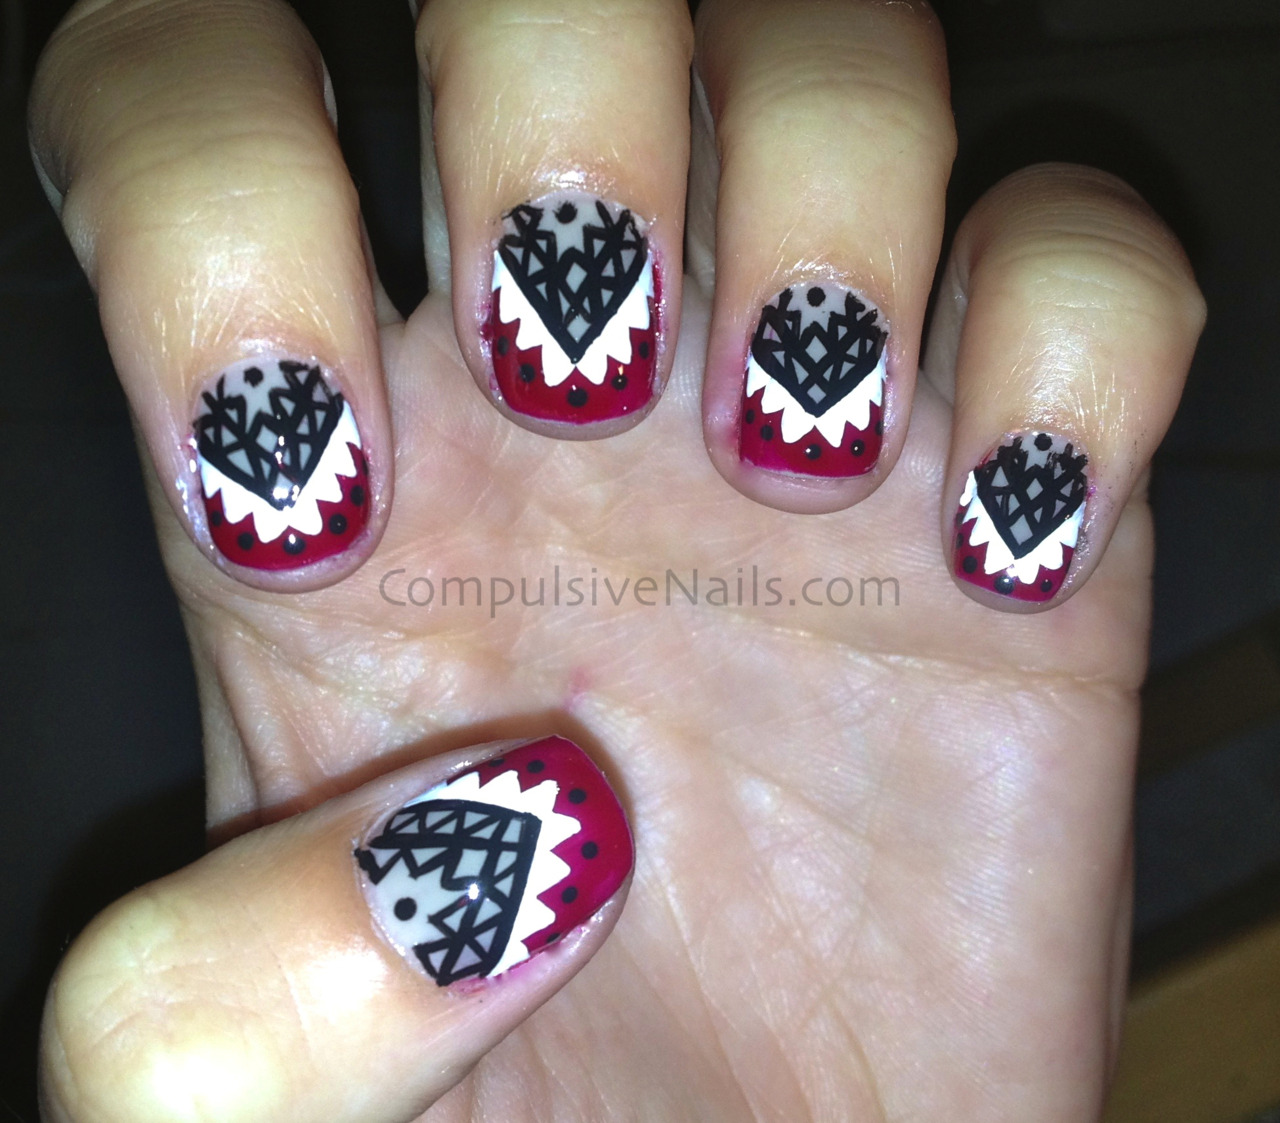 compulsivenails:  Some quick tribal nails that I threw on my nails so that they wouldn't be naked :P